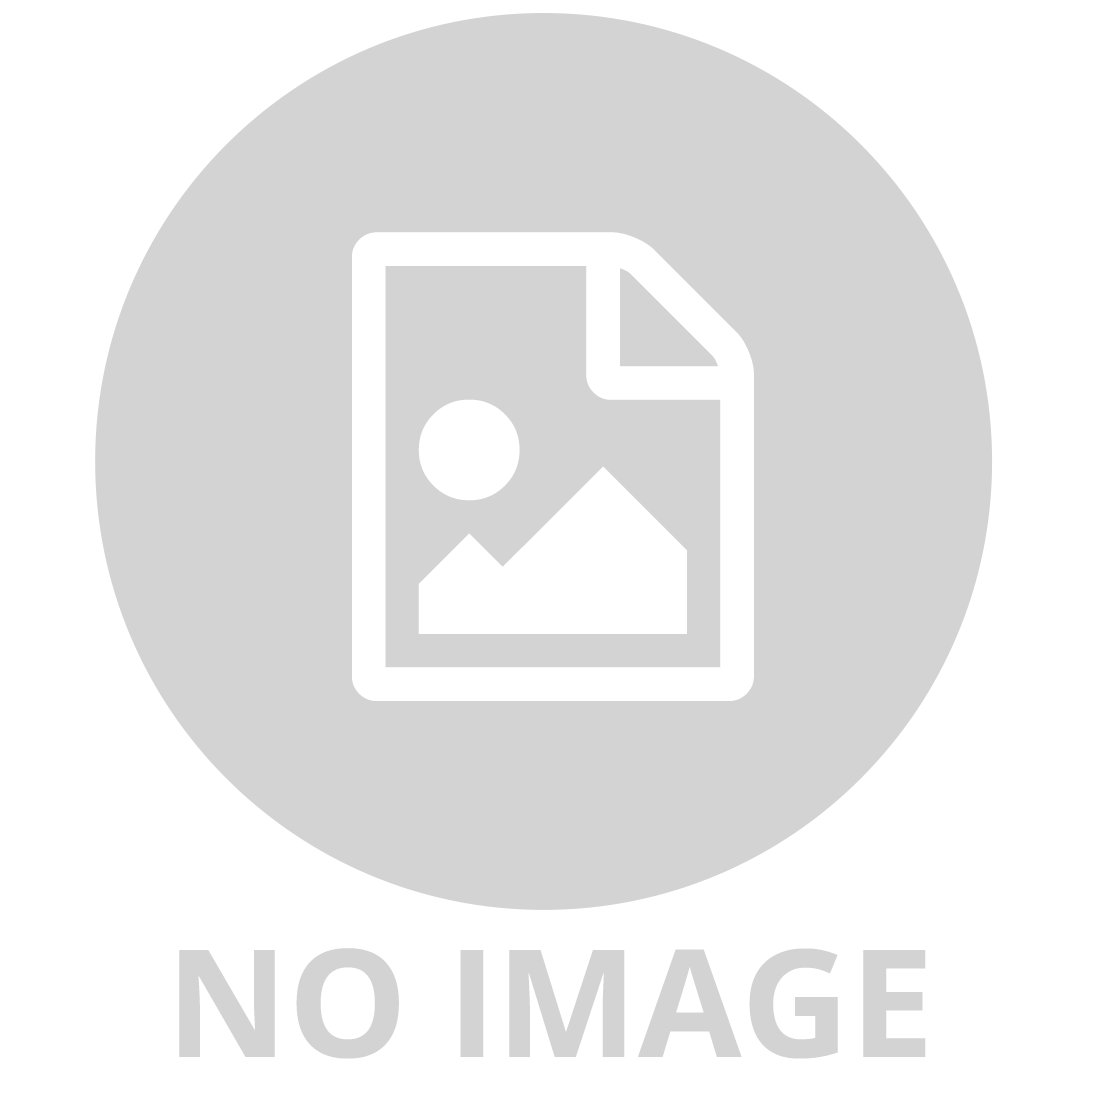 WAHU POOL PARTY CHILL ZONE